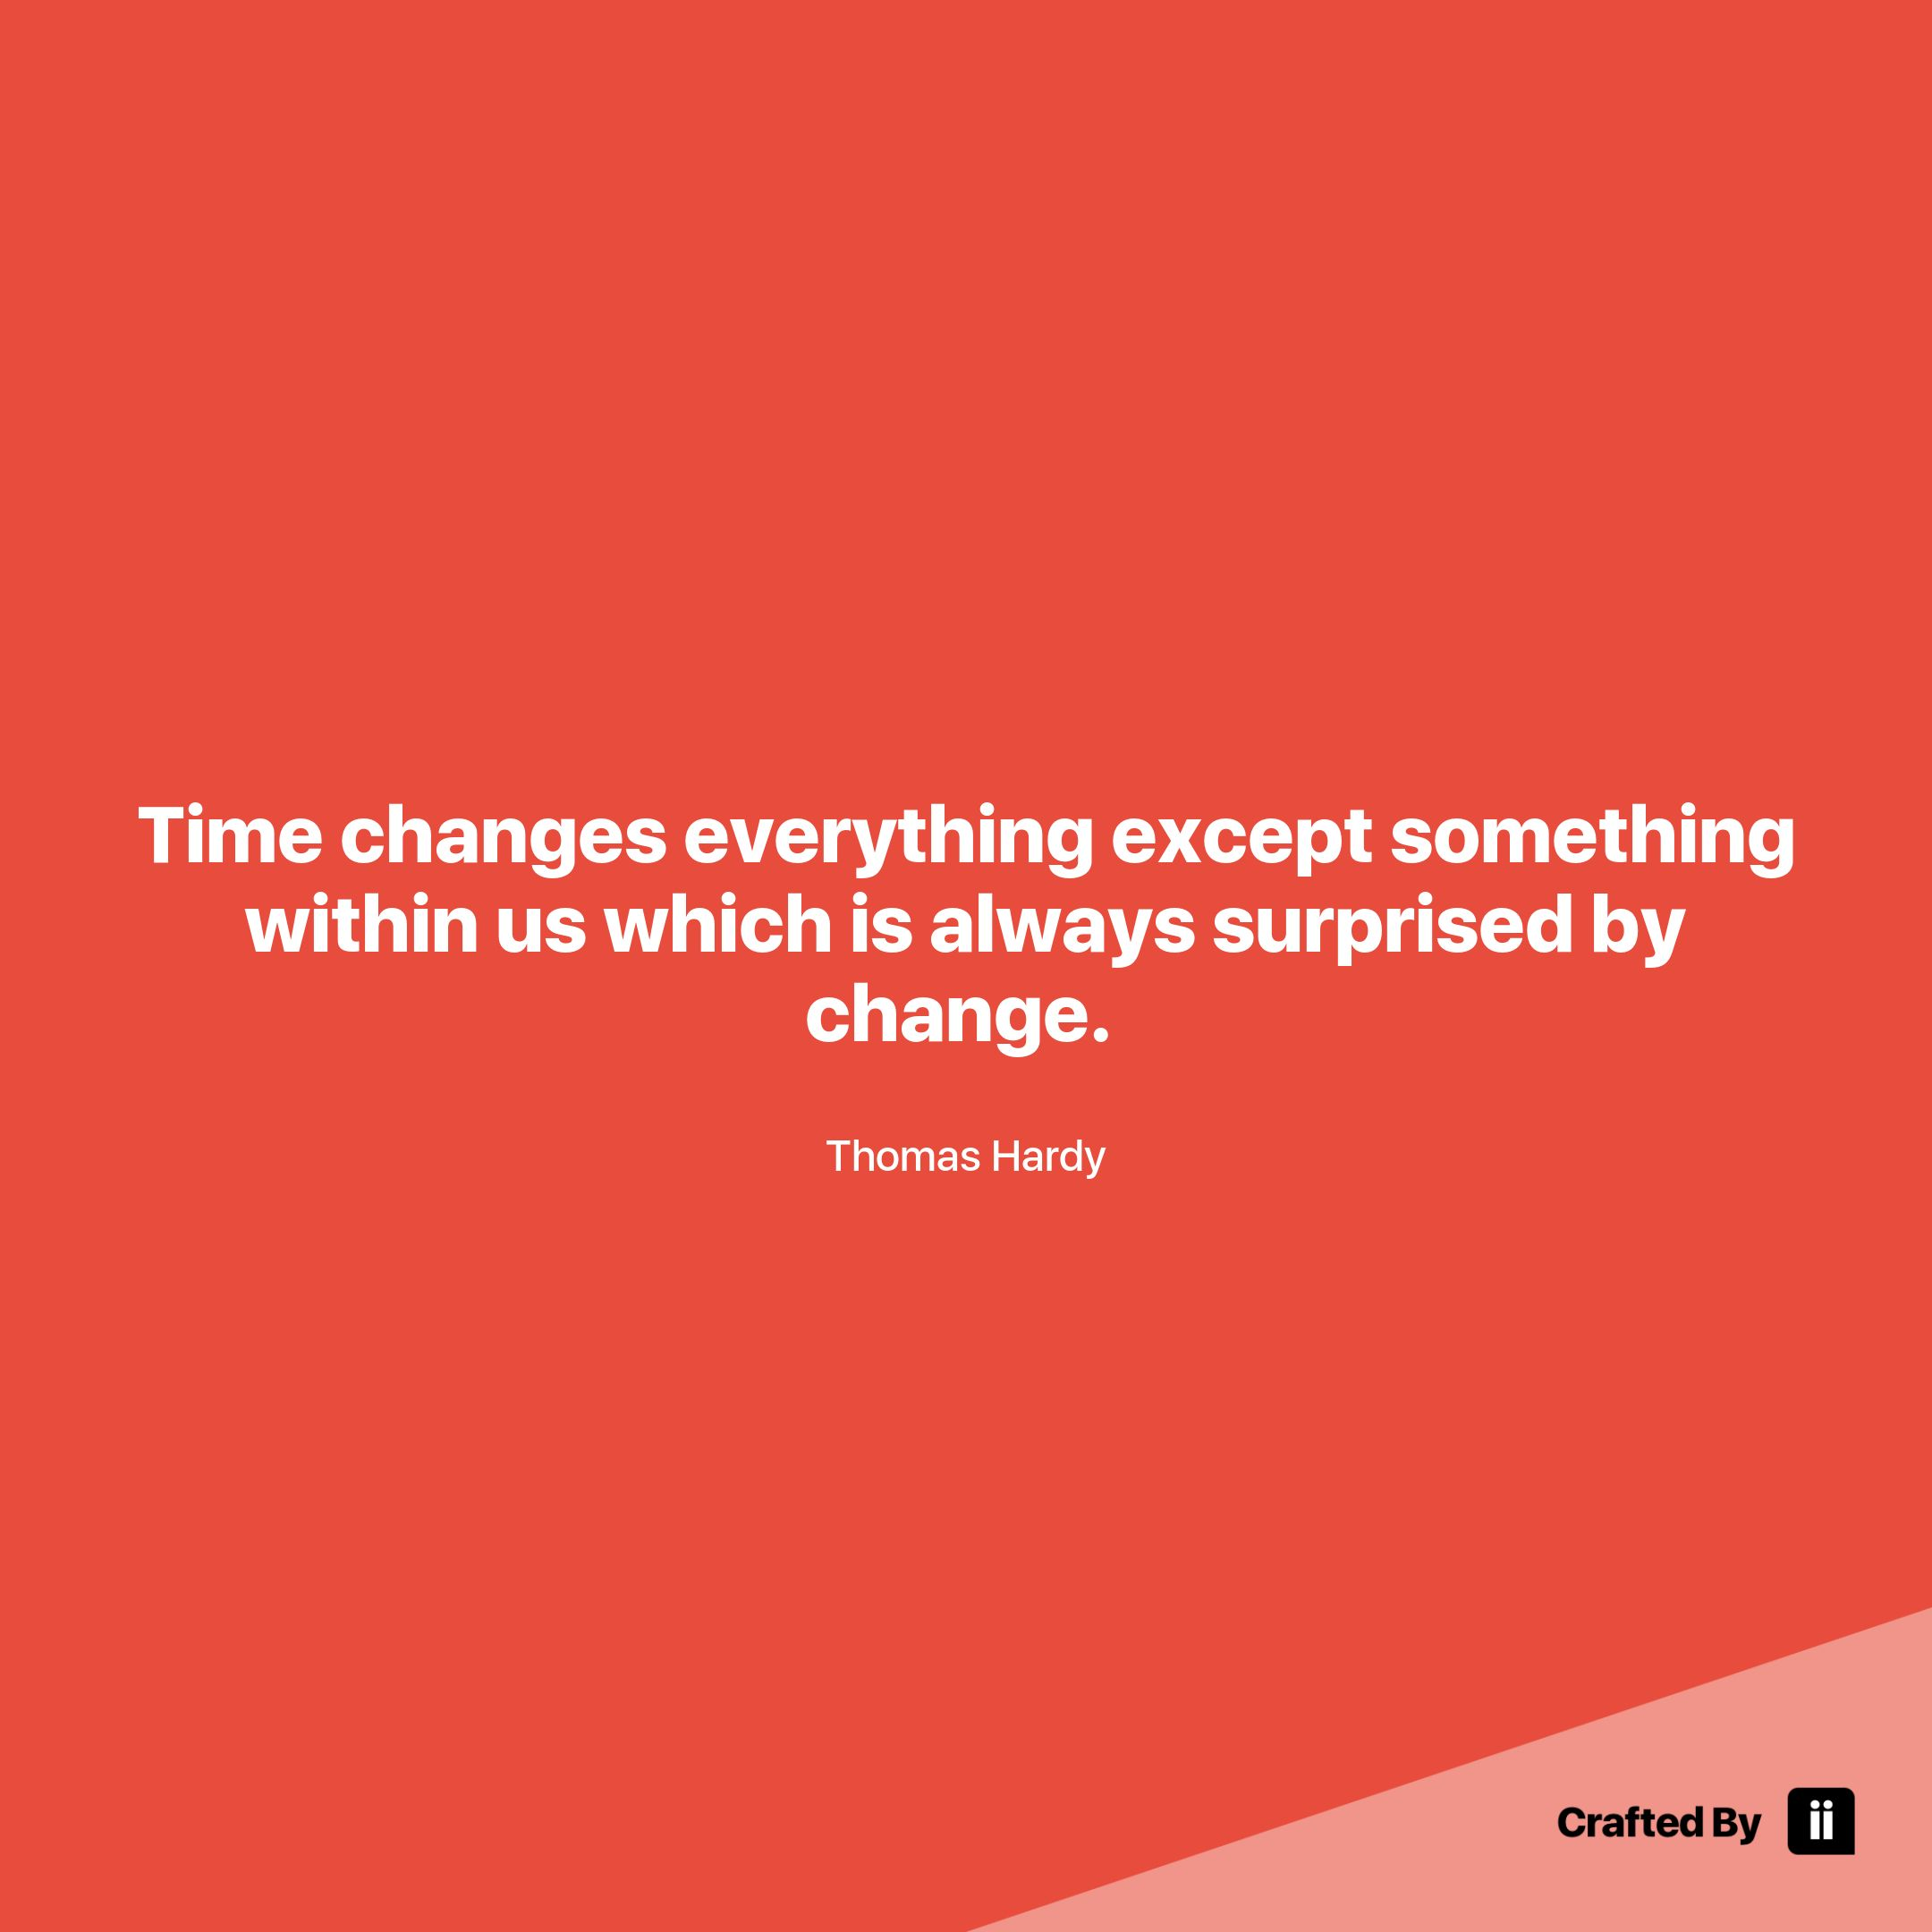 time changes everything except something within us which is always